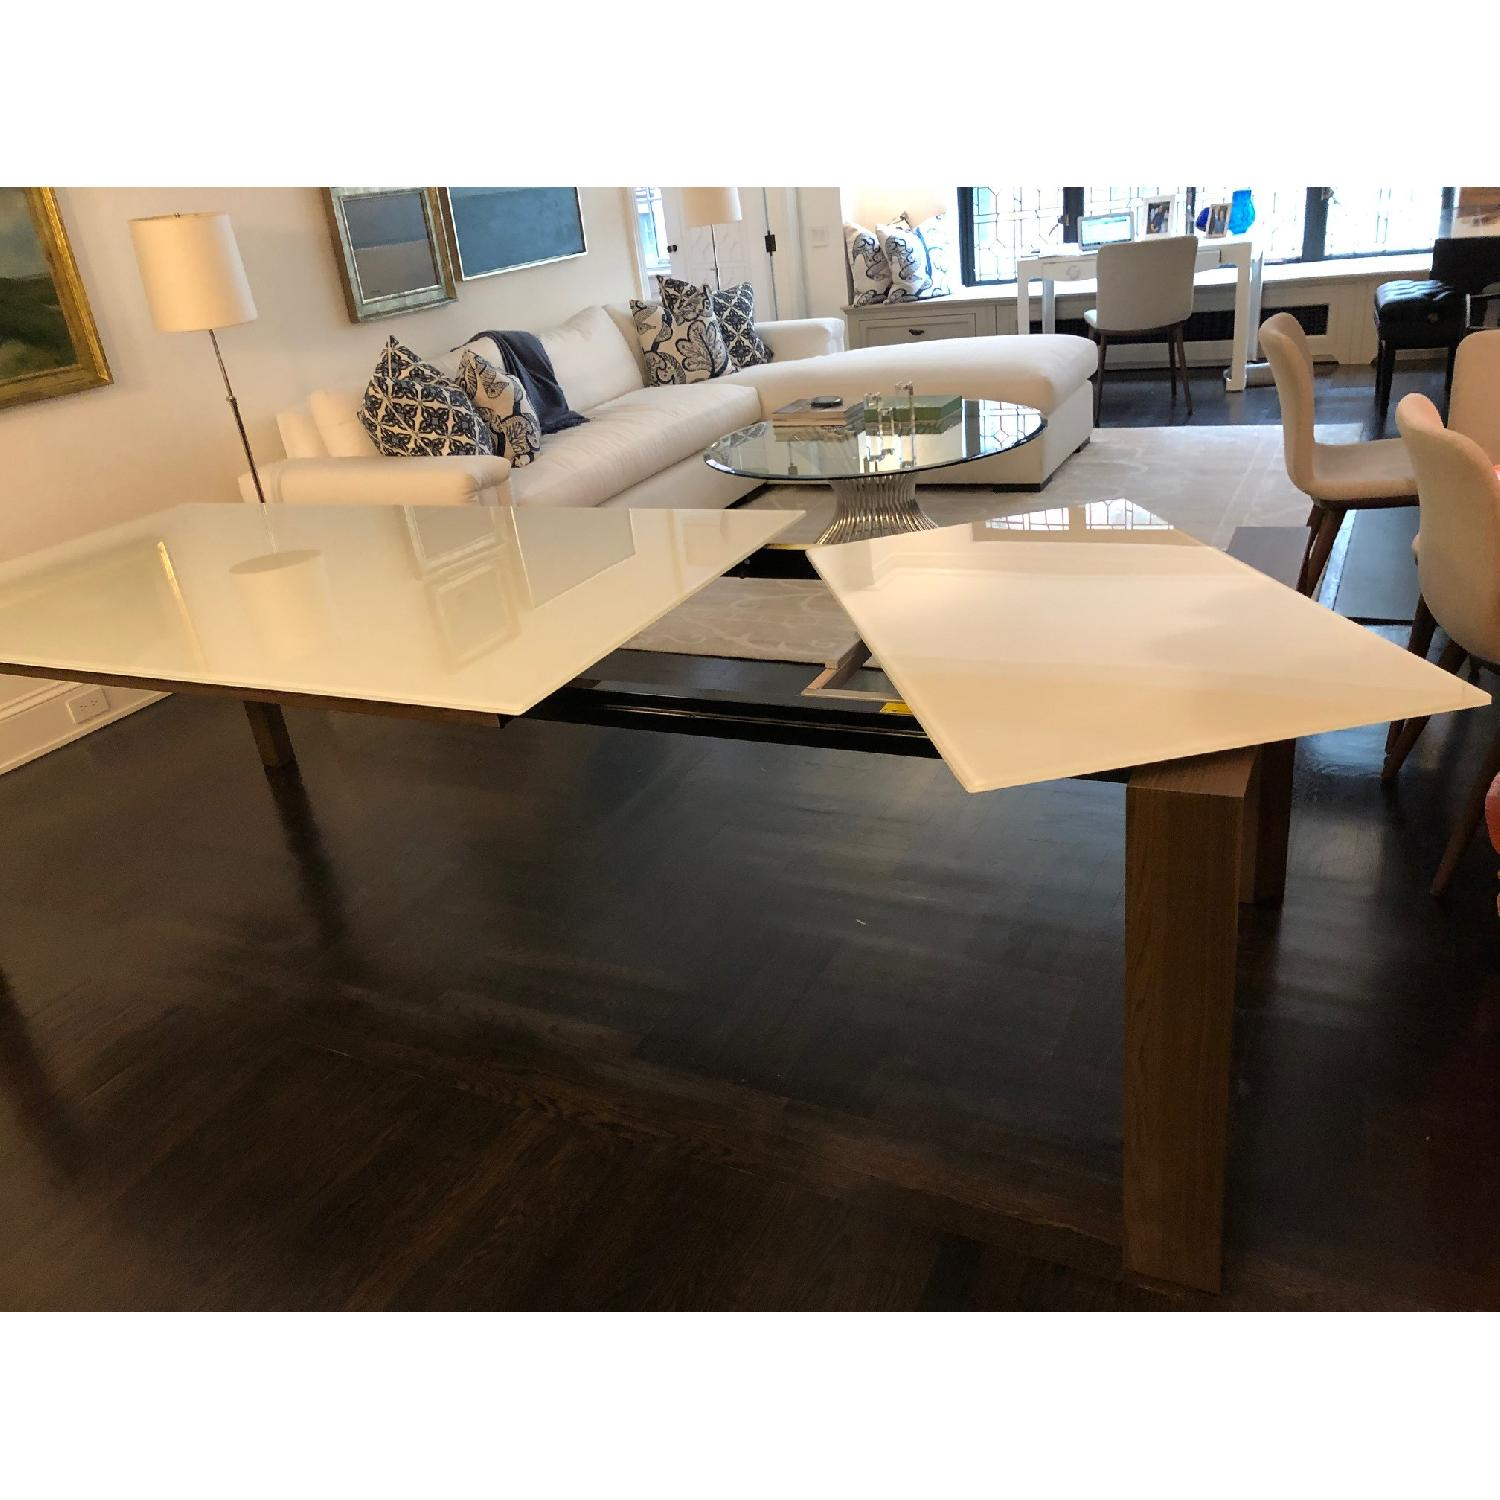 Calligaris Omnia Extendable Table w/ White Glass Top - image-2